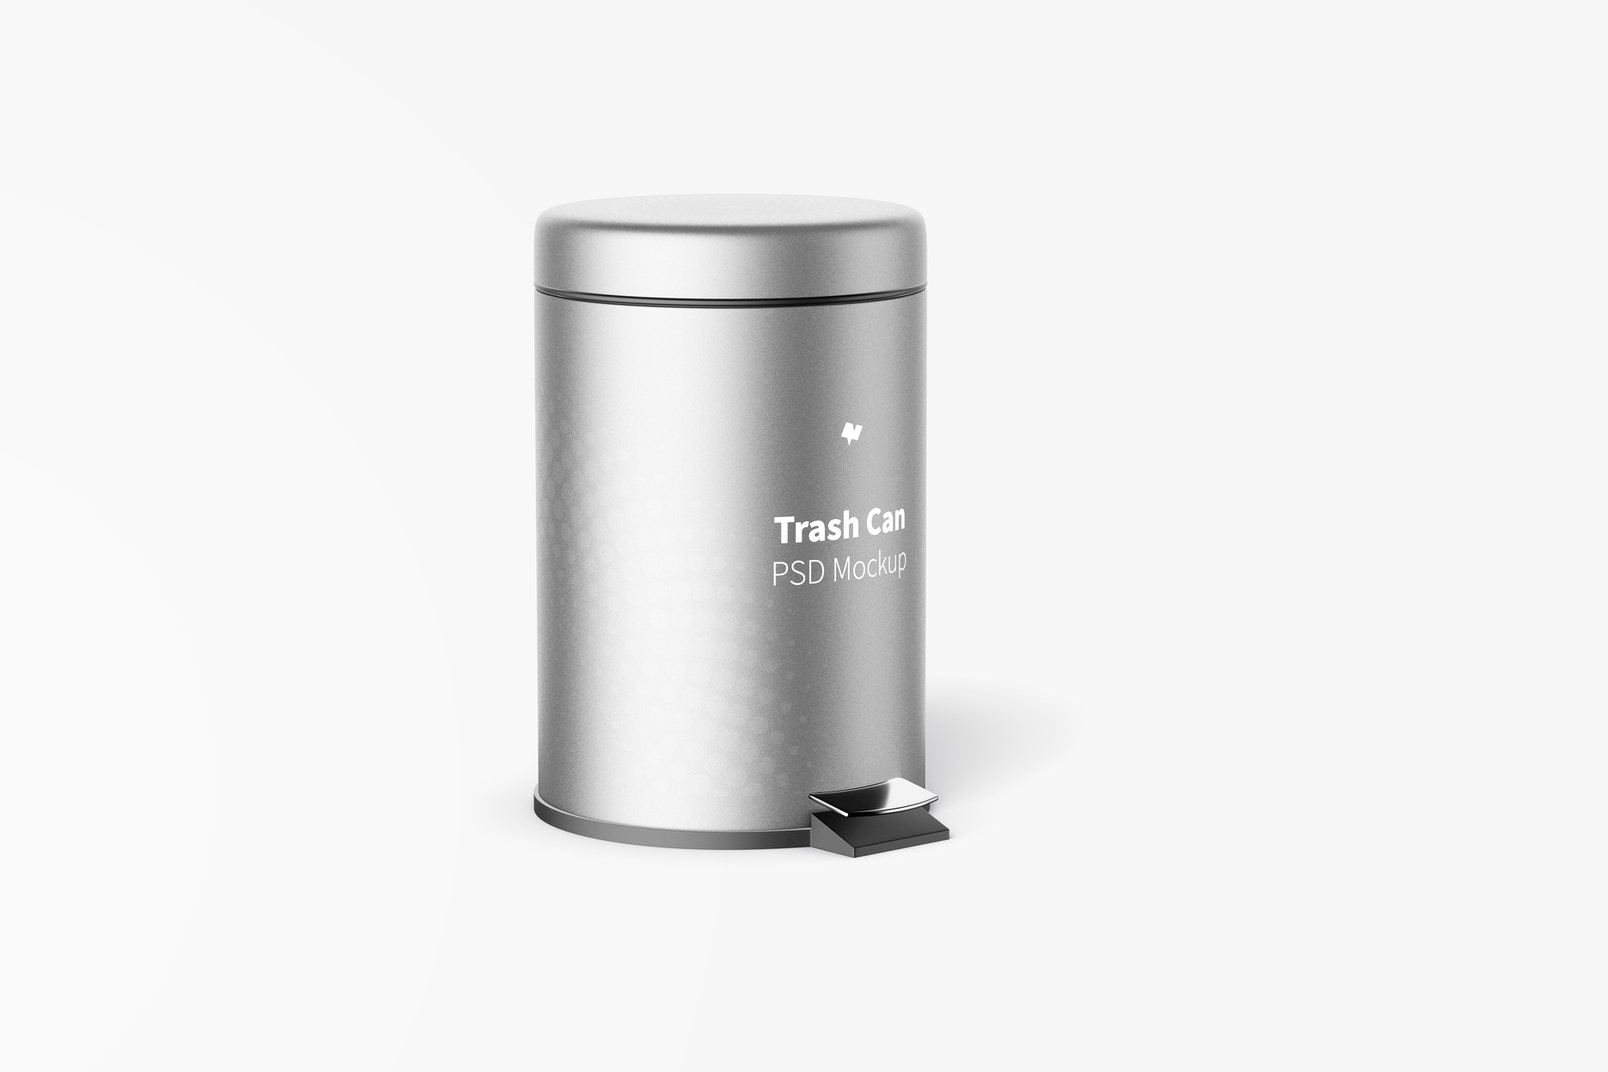 Trash Can With Foot Pedal Mockup, Right View